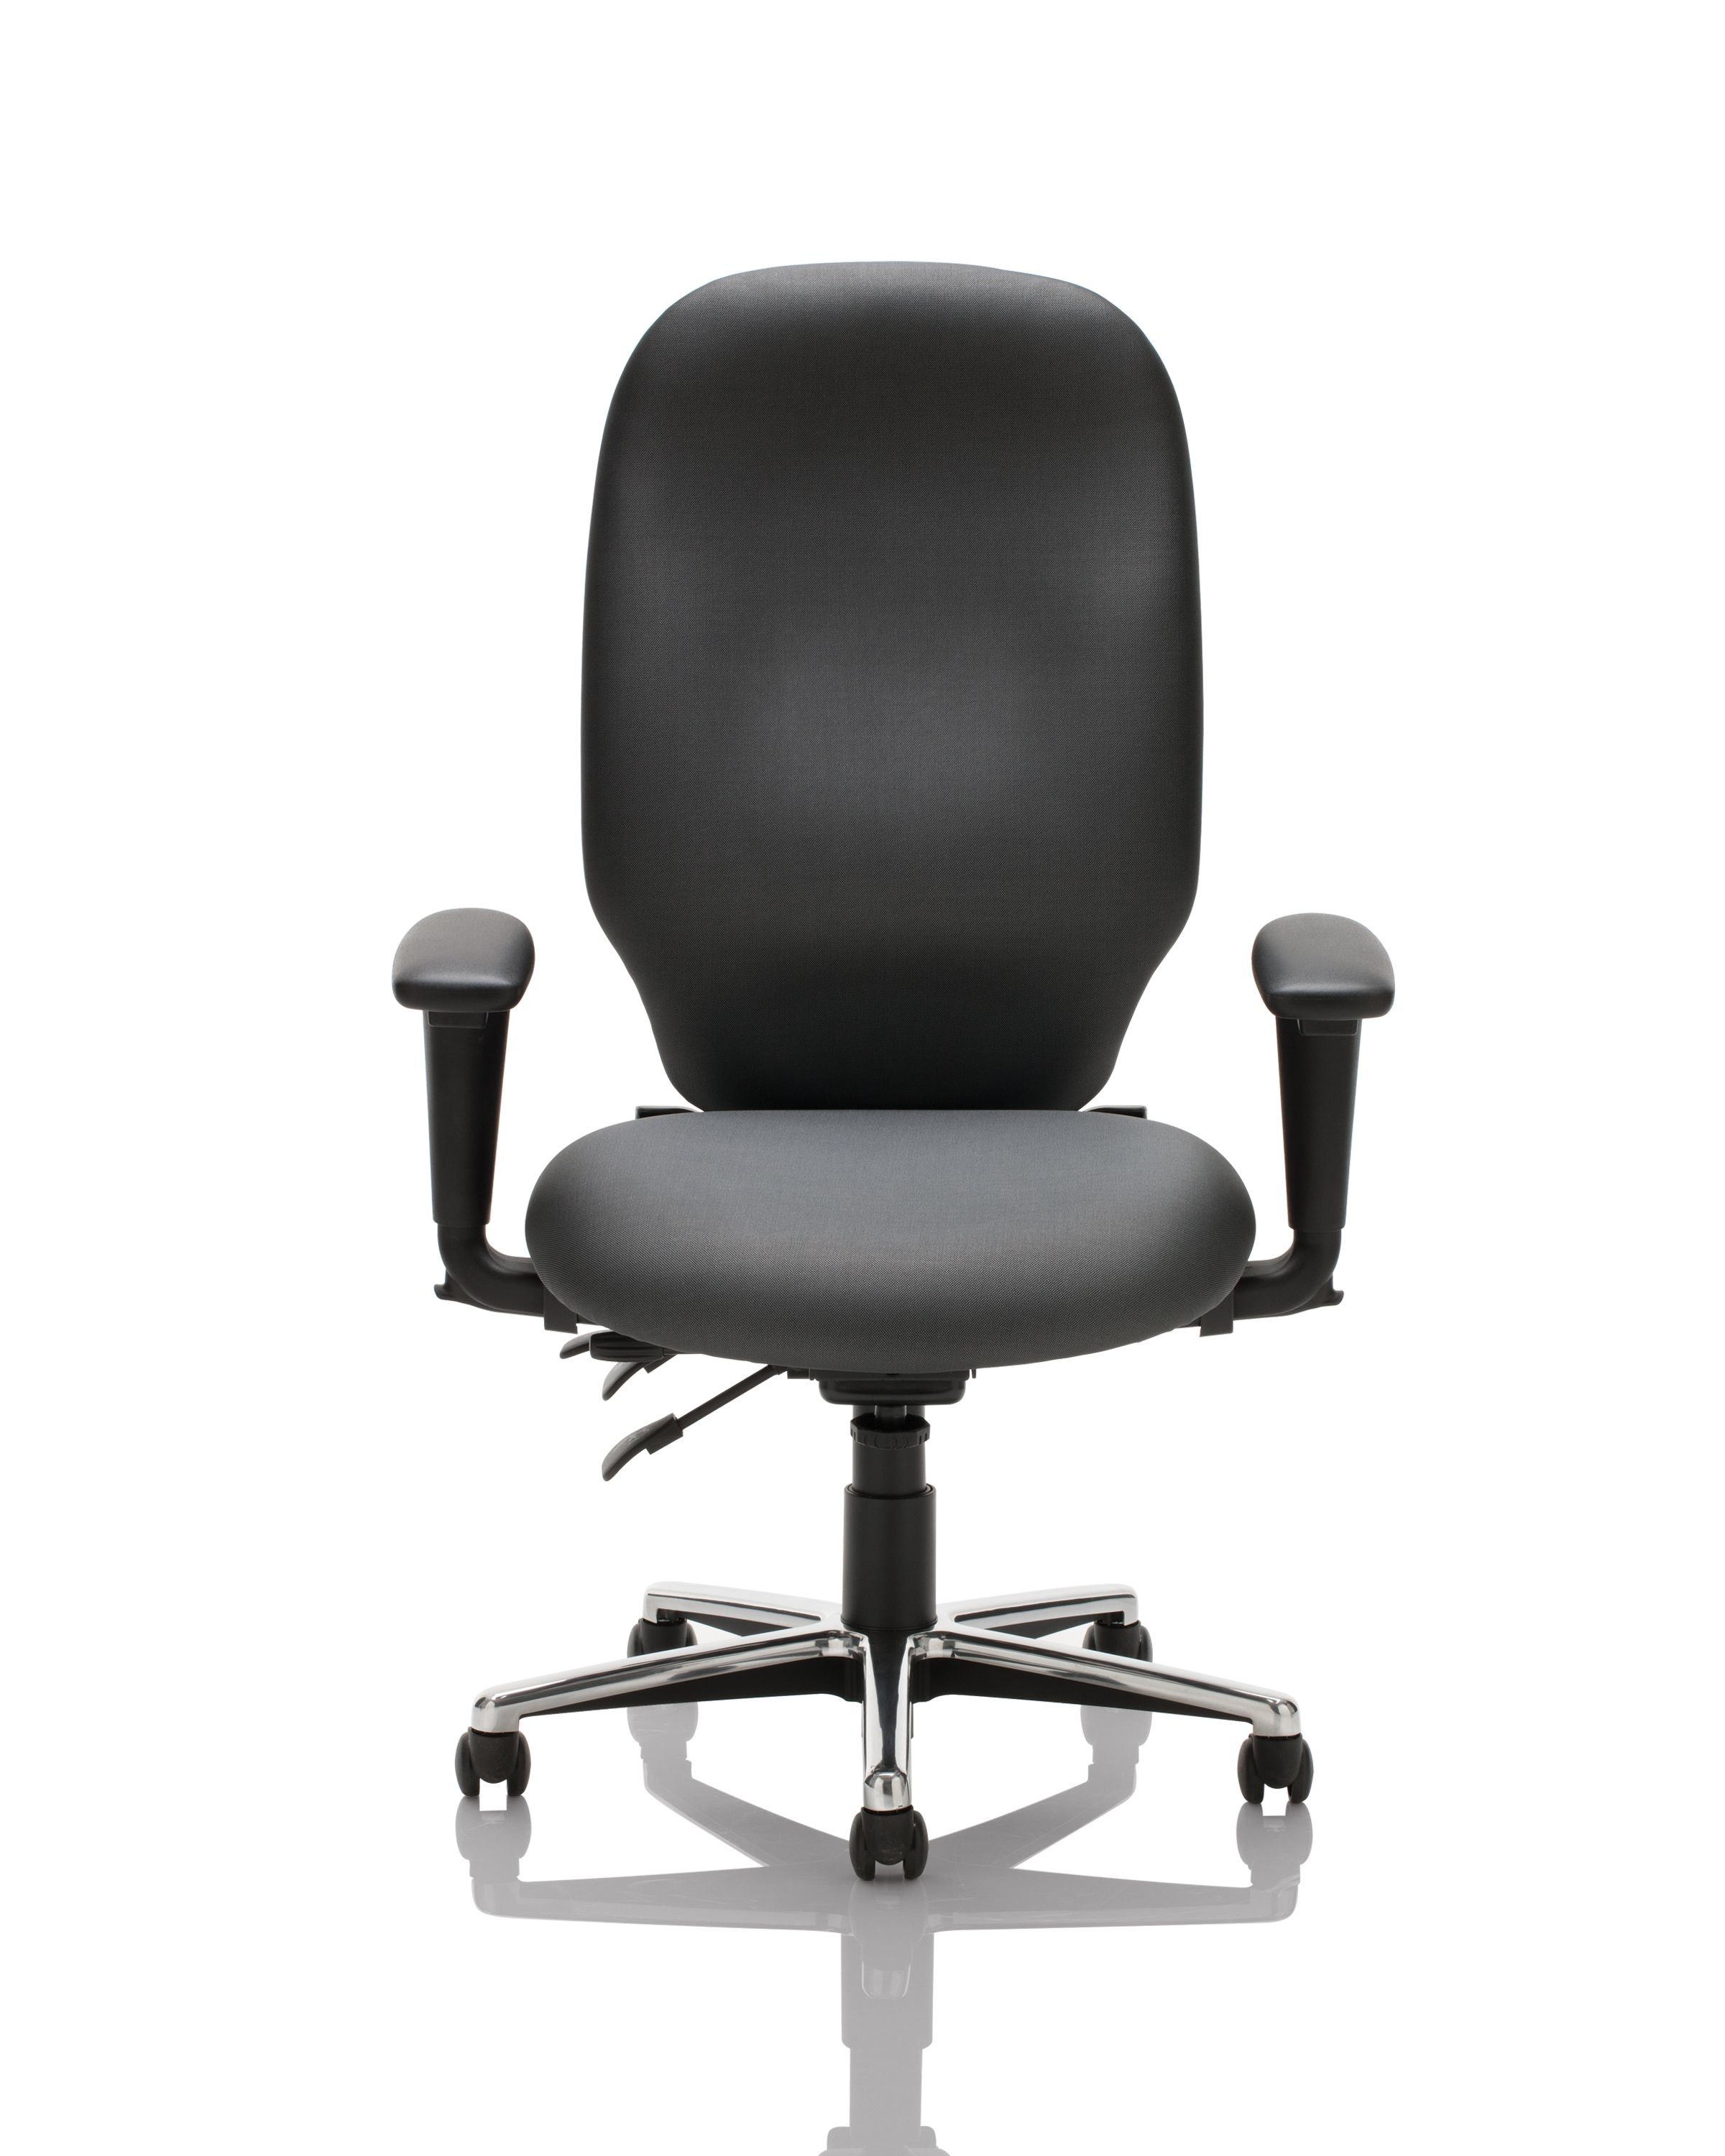 Saavy Task Seating By United Chair Office Furniture Modern Modern Office Furniture